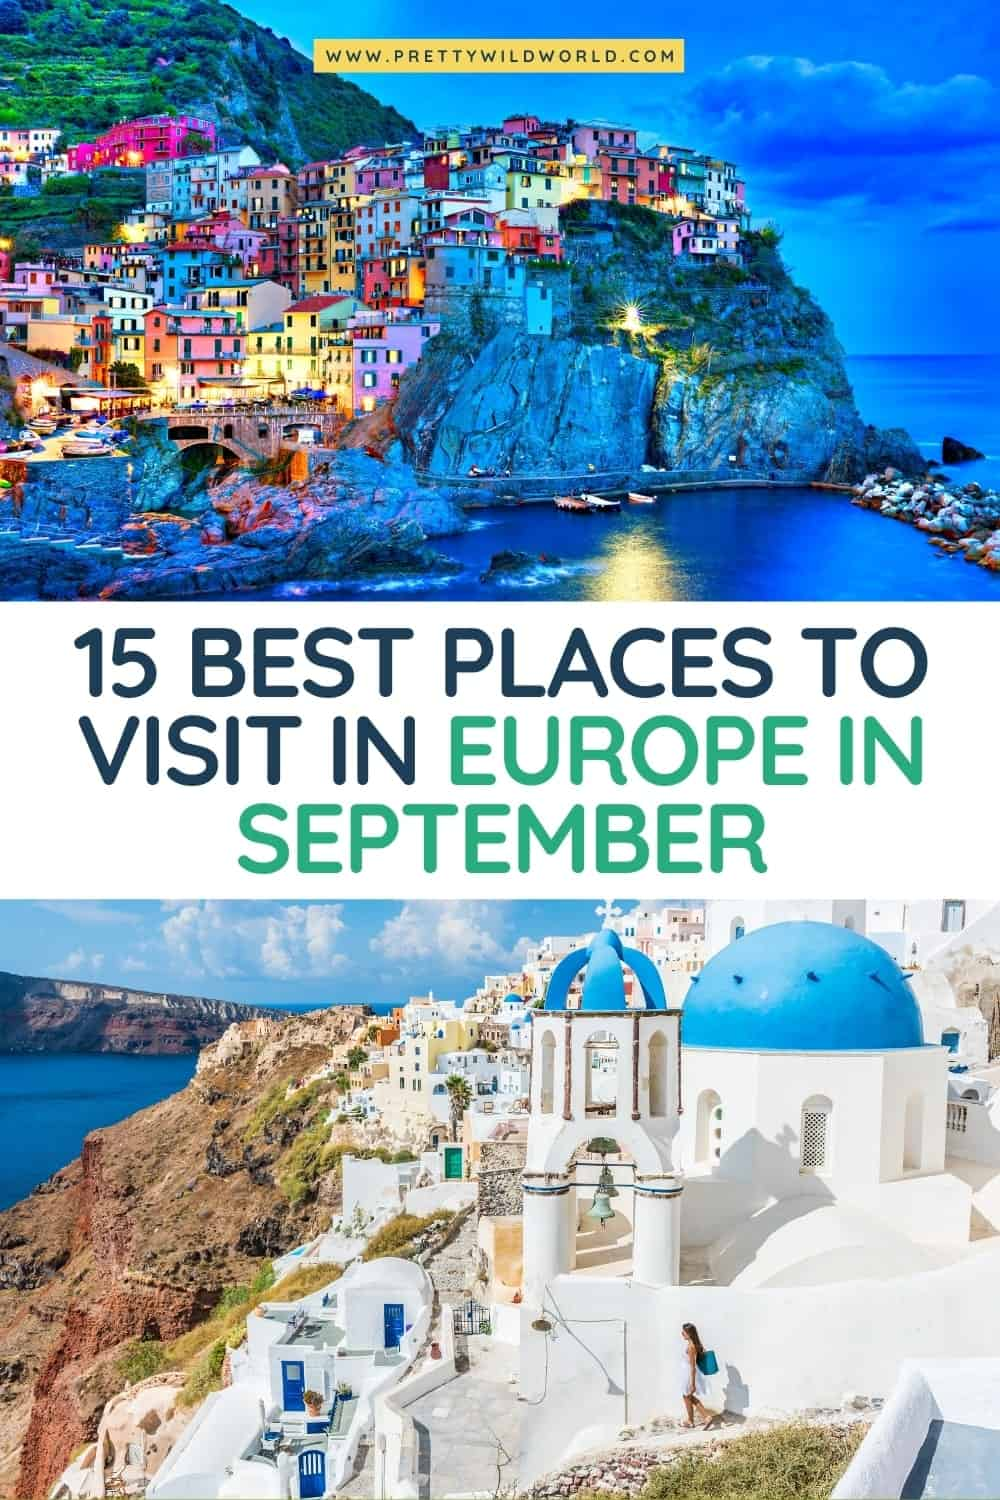 Europe in September | Looking for awesome destinations to visit in September in Europe? Boasting with excellent weather. There's plenty of places to visit around this time of the year which you can put in you bucket list! #traveldestinations #traveltips #bucketlisttravel #travelideas #travelguide #amazingdestinations #traveltheworld